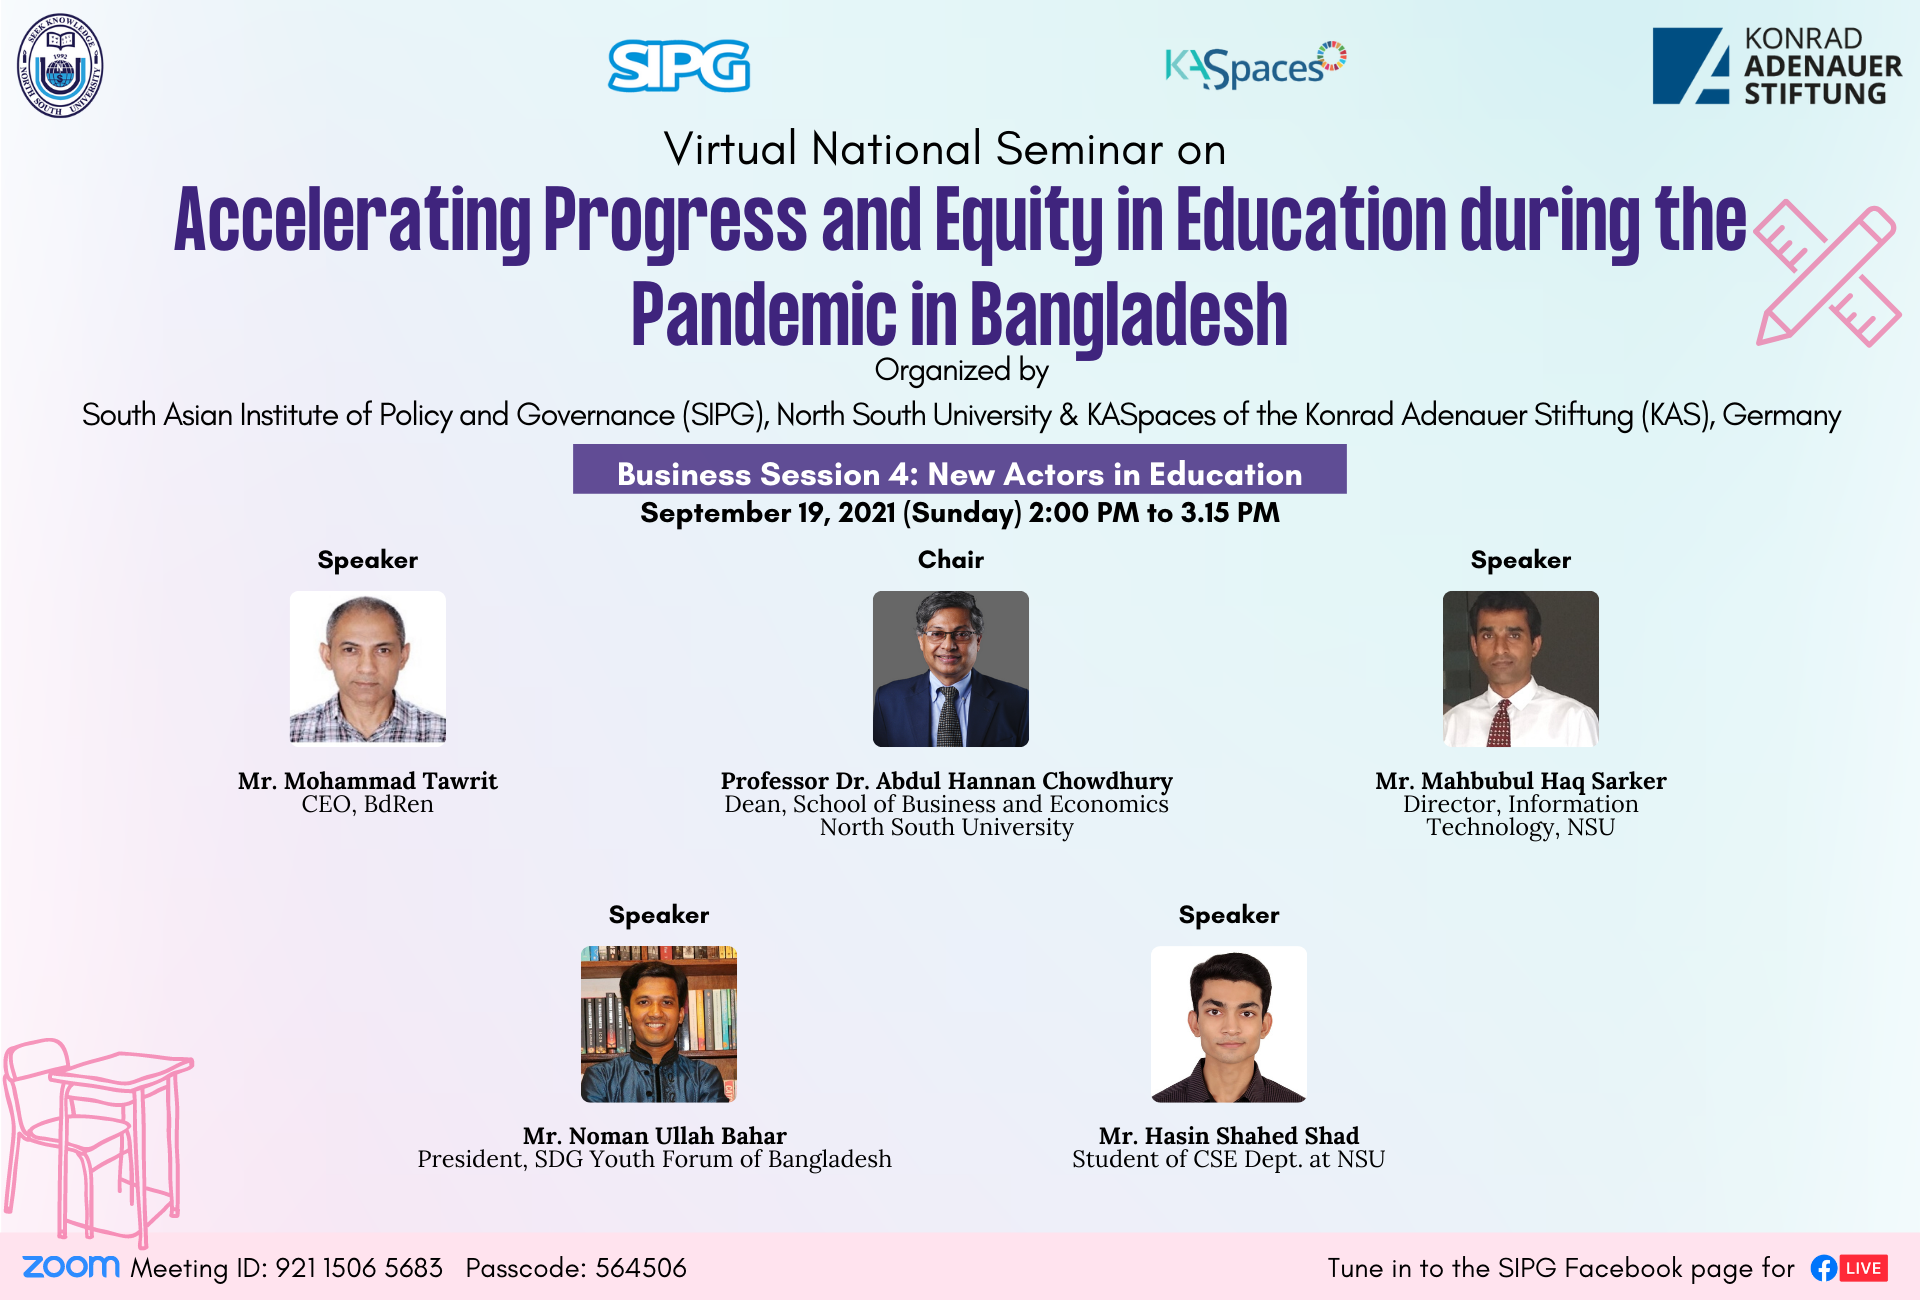 Accelerating Progress and Equity in Education during the Pandemic in Bangladesh